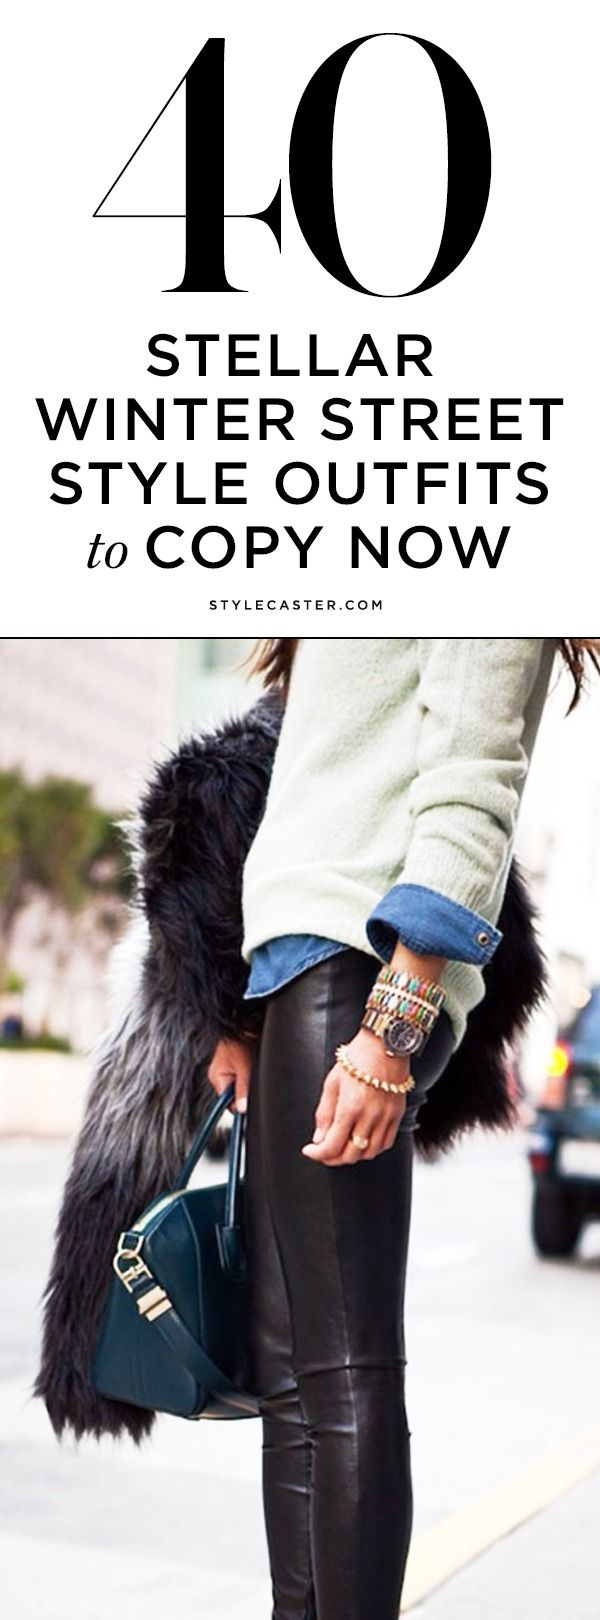 best myfashion images on pinterest putting outfits together